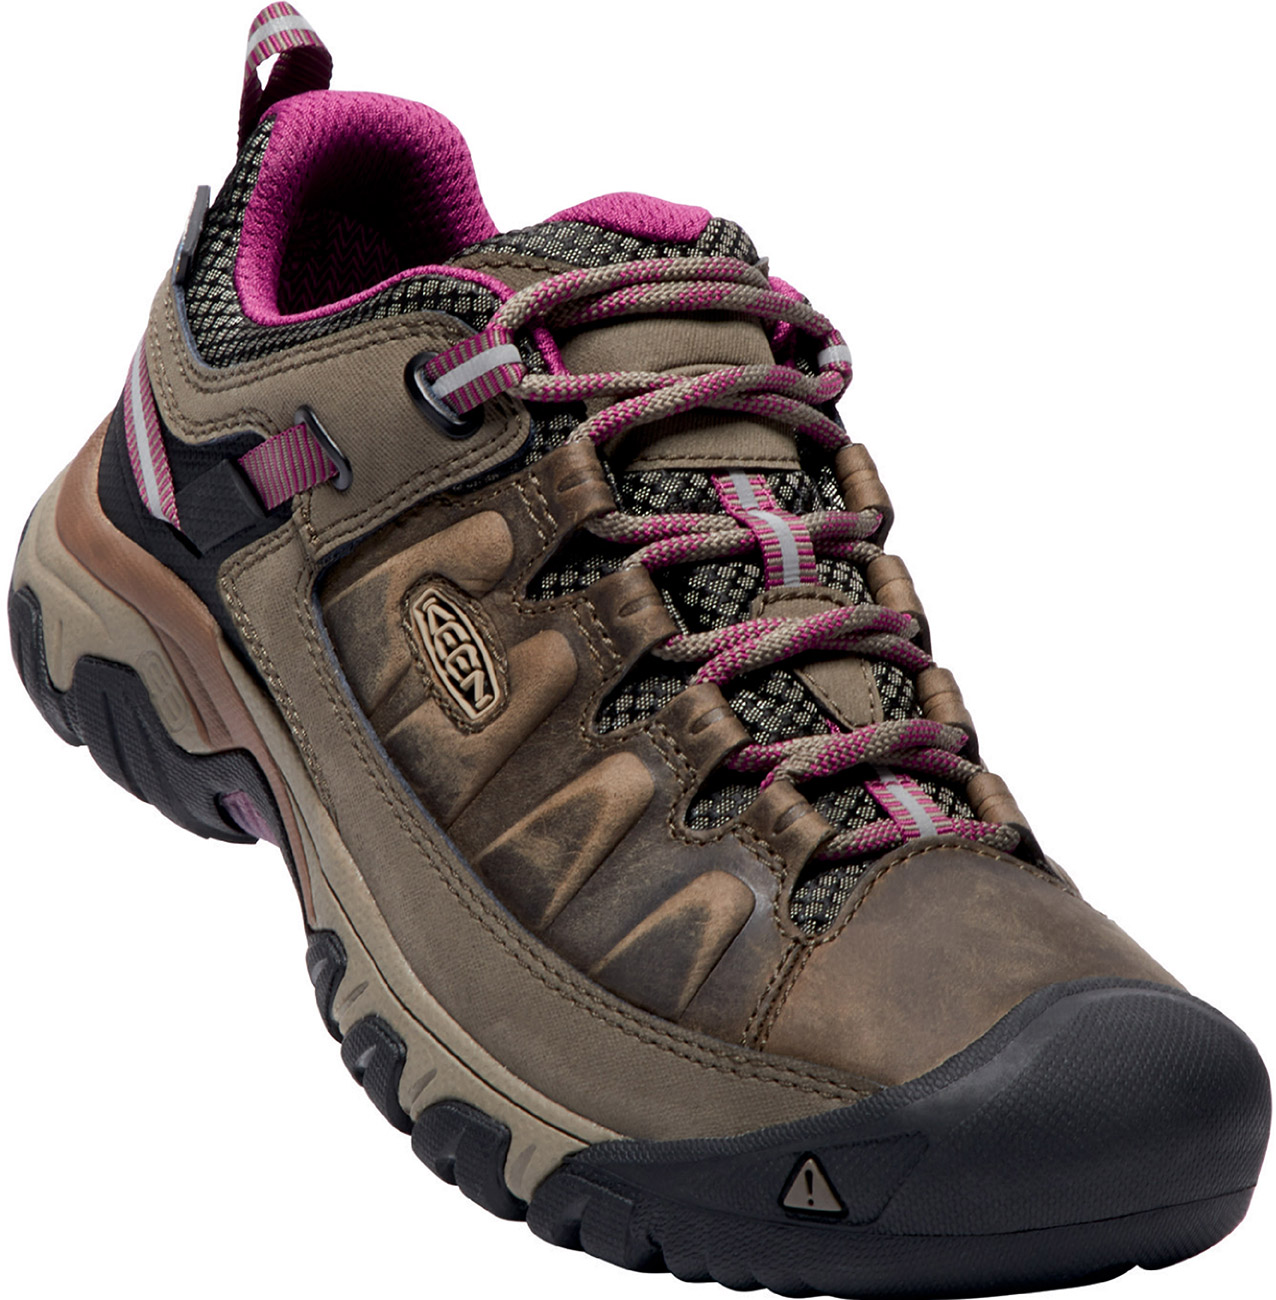 Keen Targhee III Wms Shoe Weiss/Boysenberry